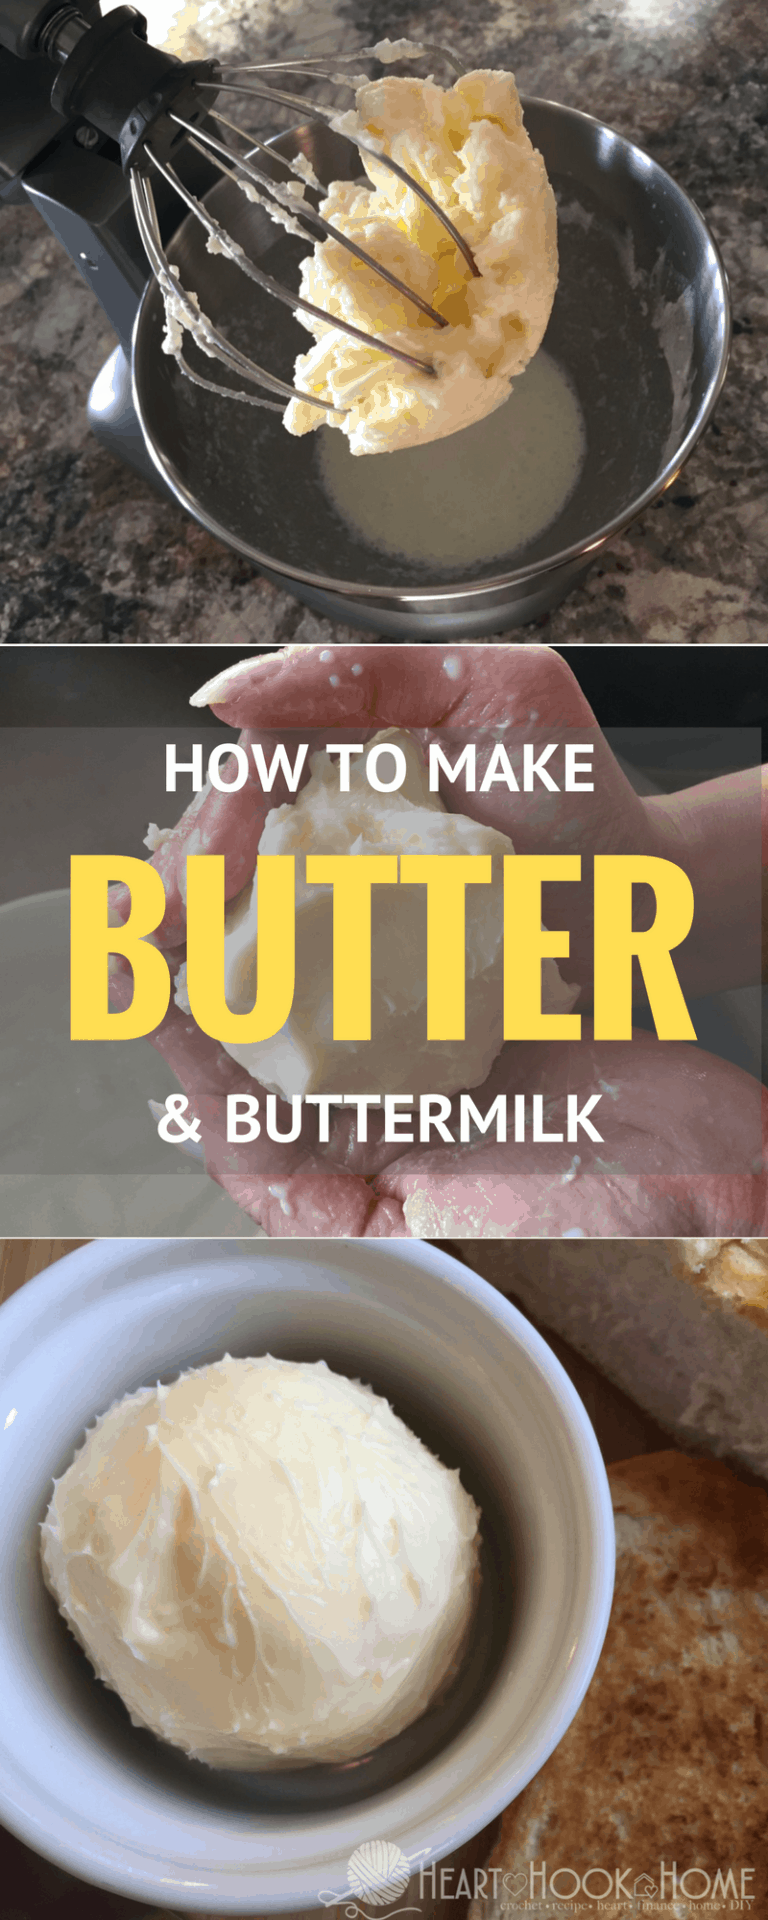 Homemade Butter (and Buttermilk!) Using a Kitchen Mixer